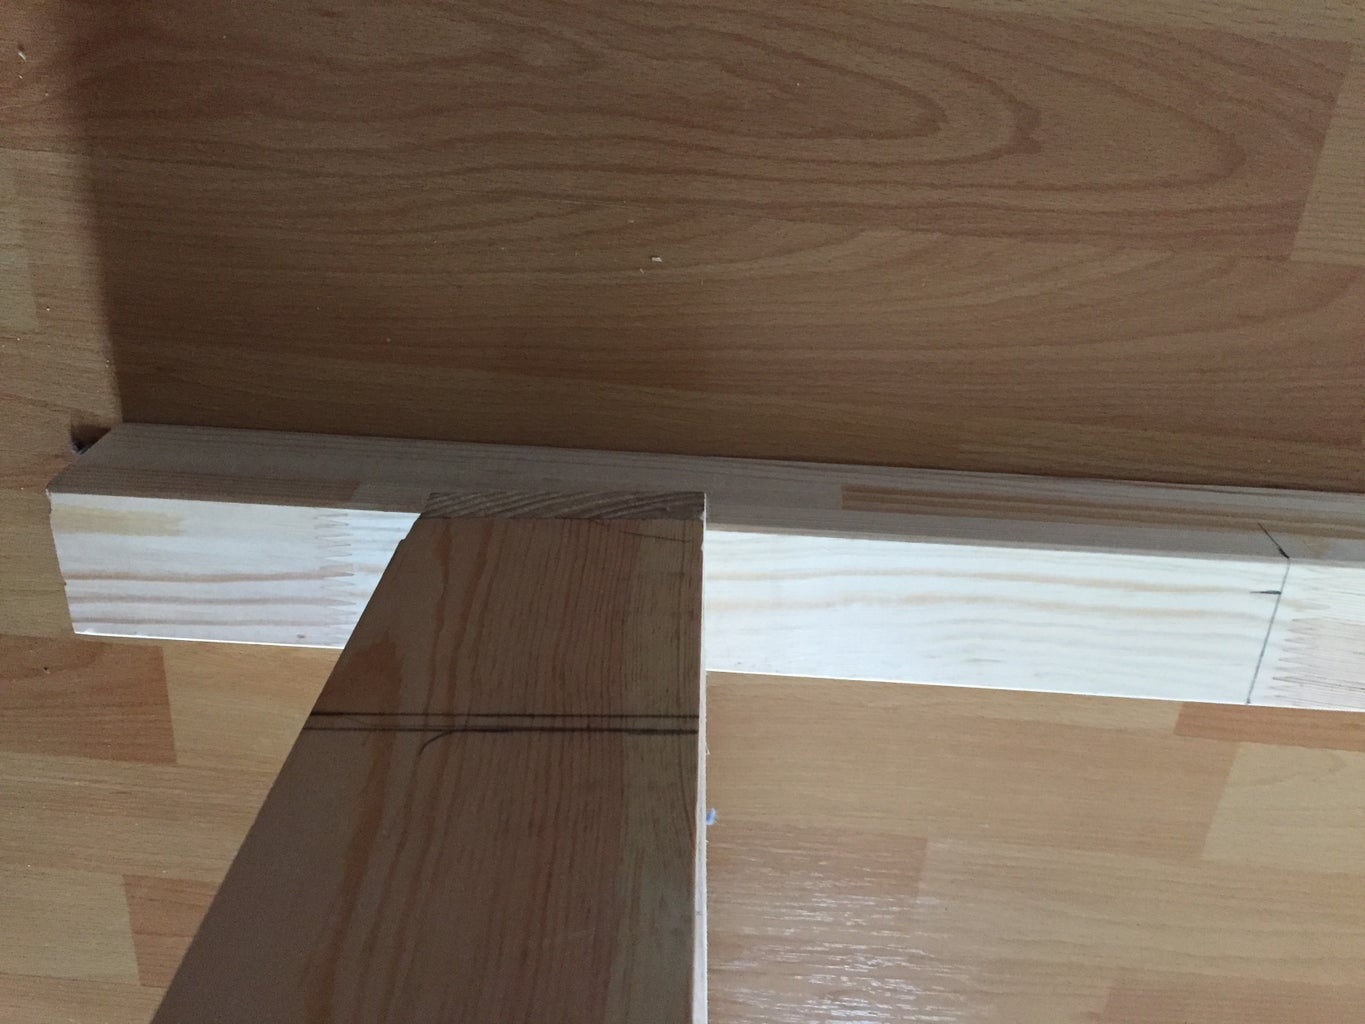 Mark the Posts (bed Legs) for Placing the Bed Frame and the Guard Rails